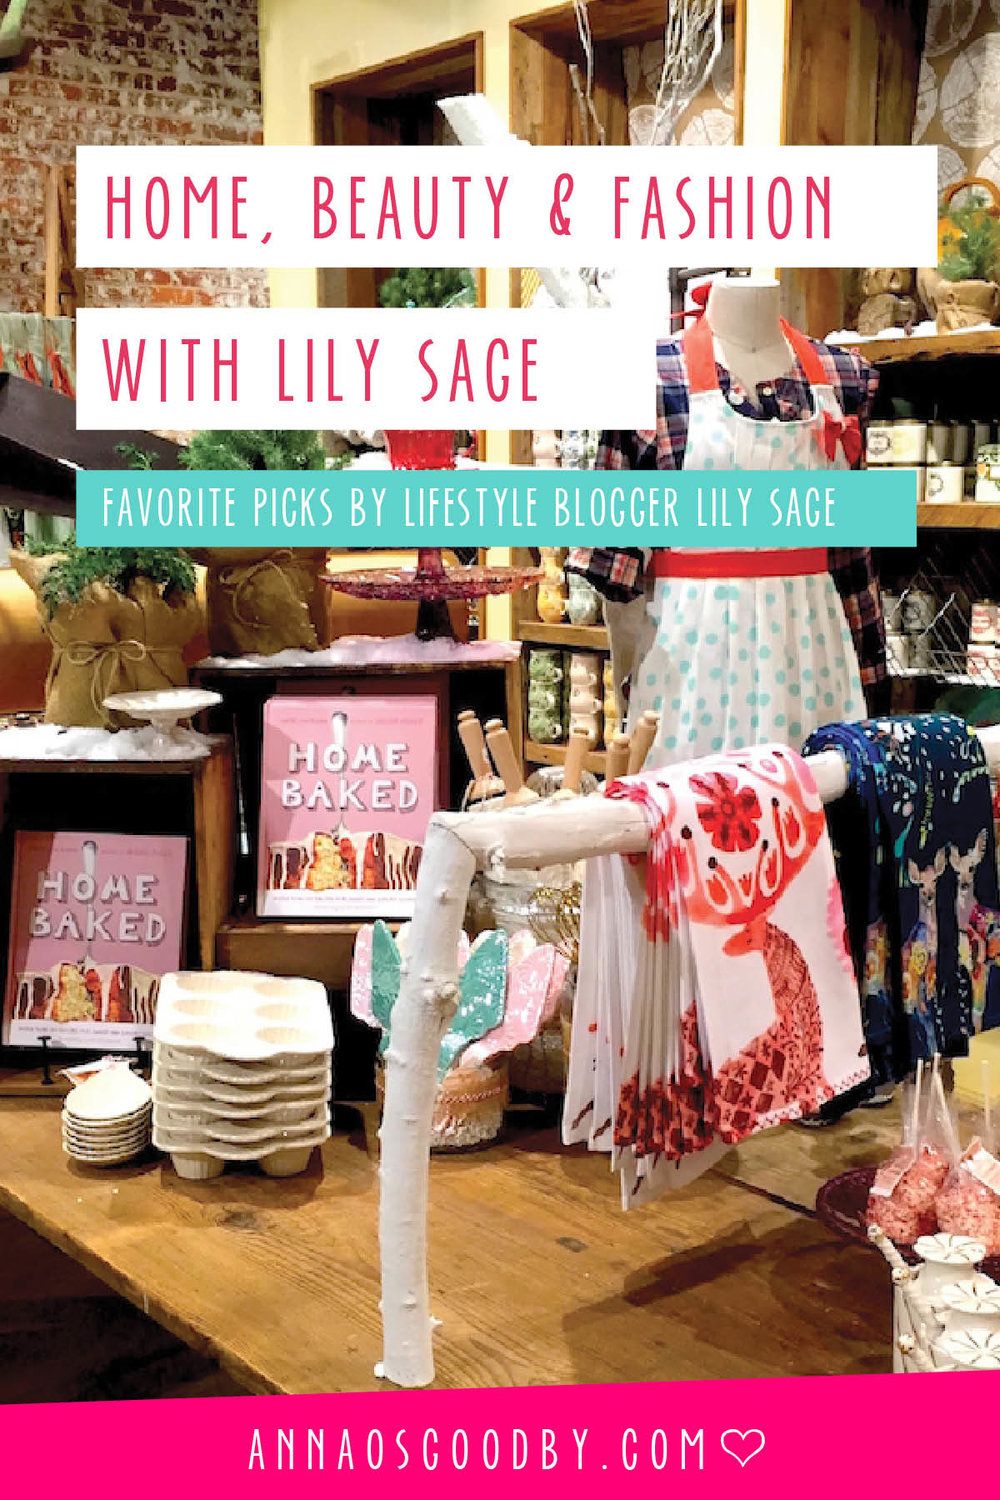 Anna Osgoodby Life + Design :: Home, Beauty & Fashion with NYC Lifestyle Blogger Lily Sage